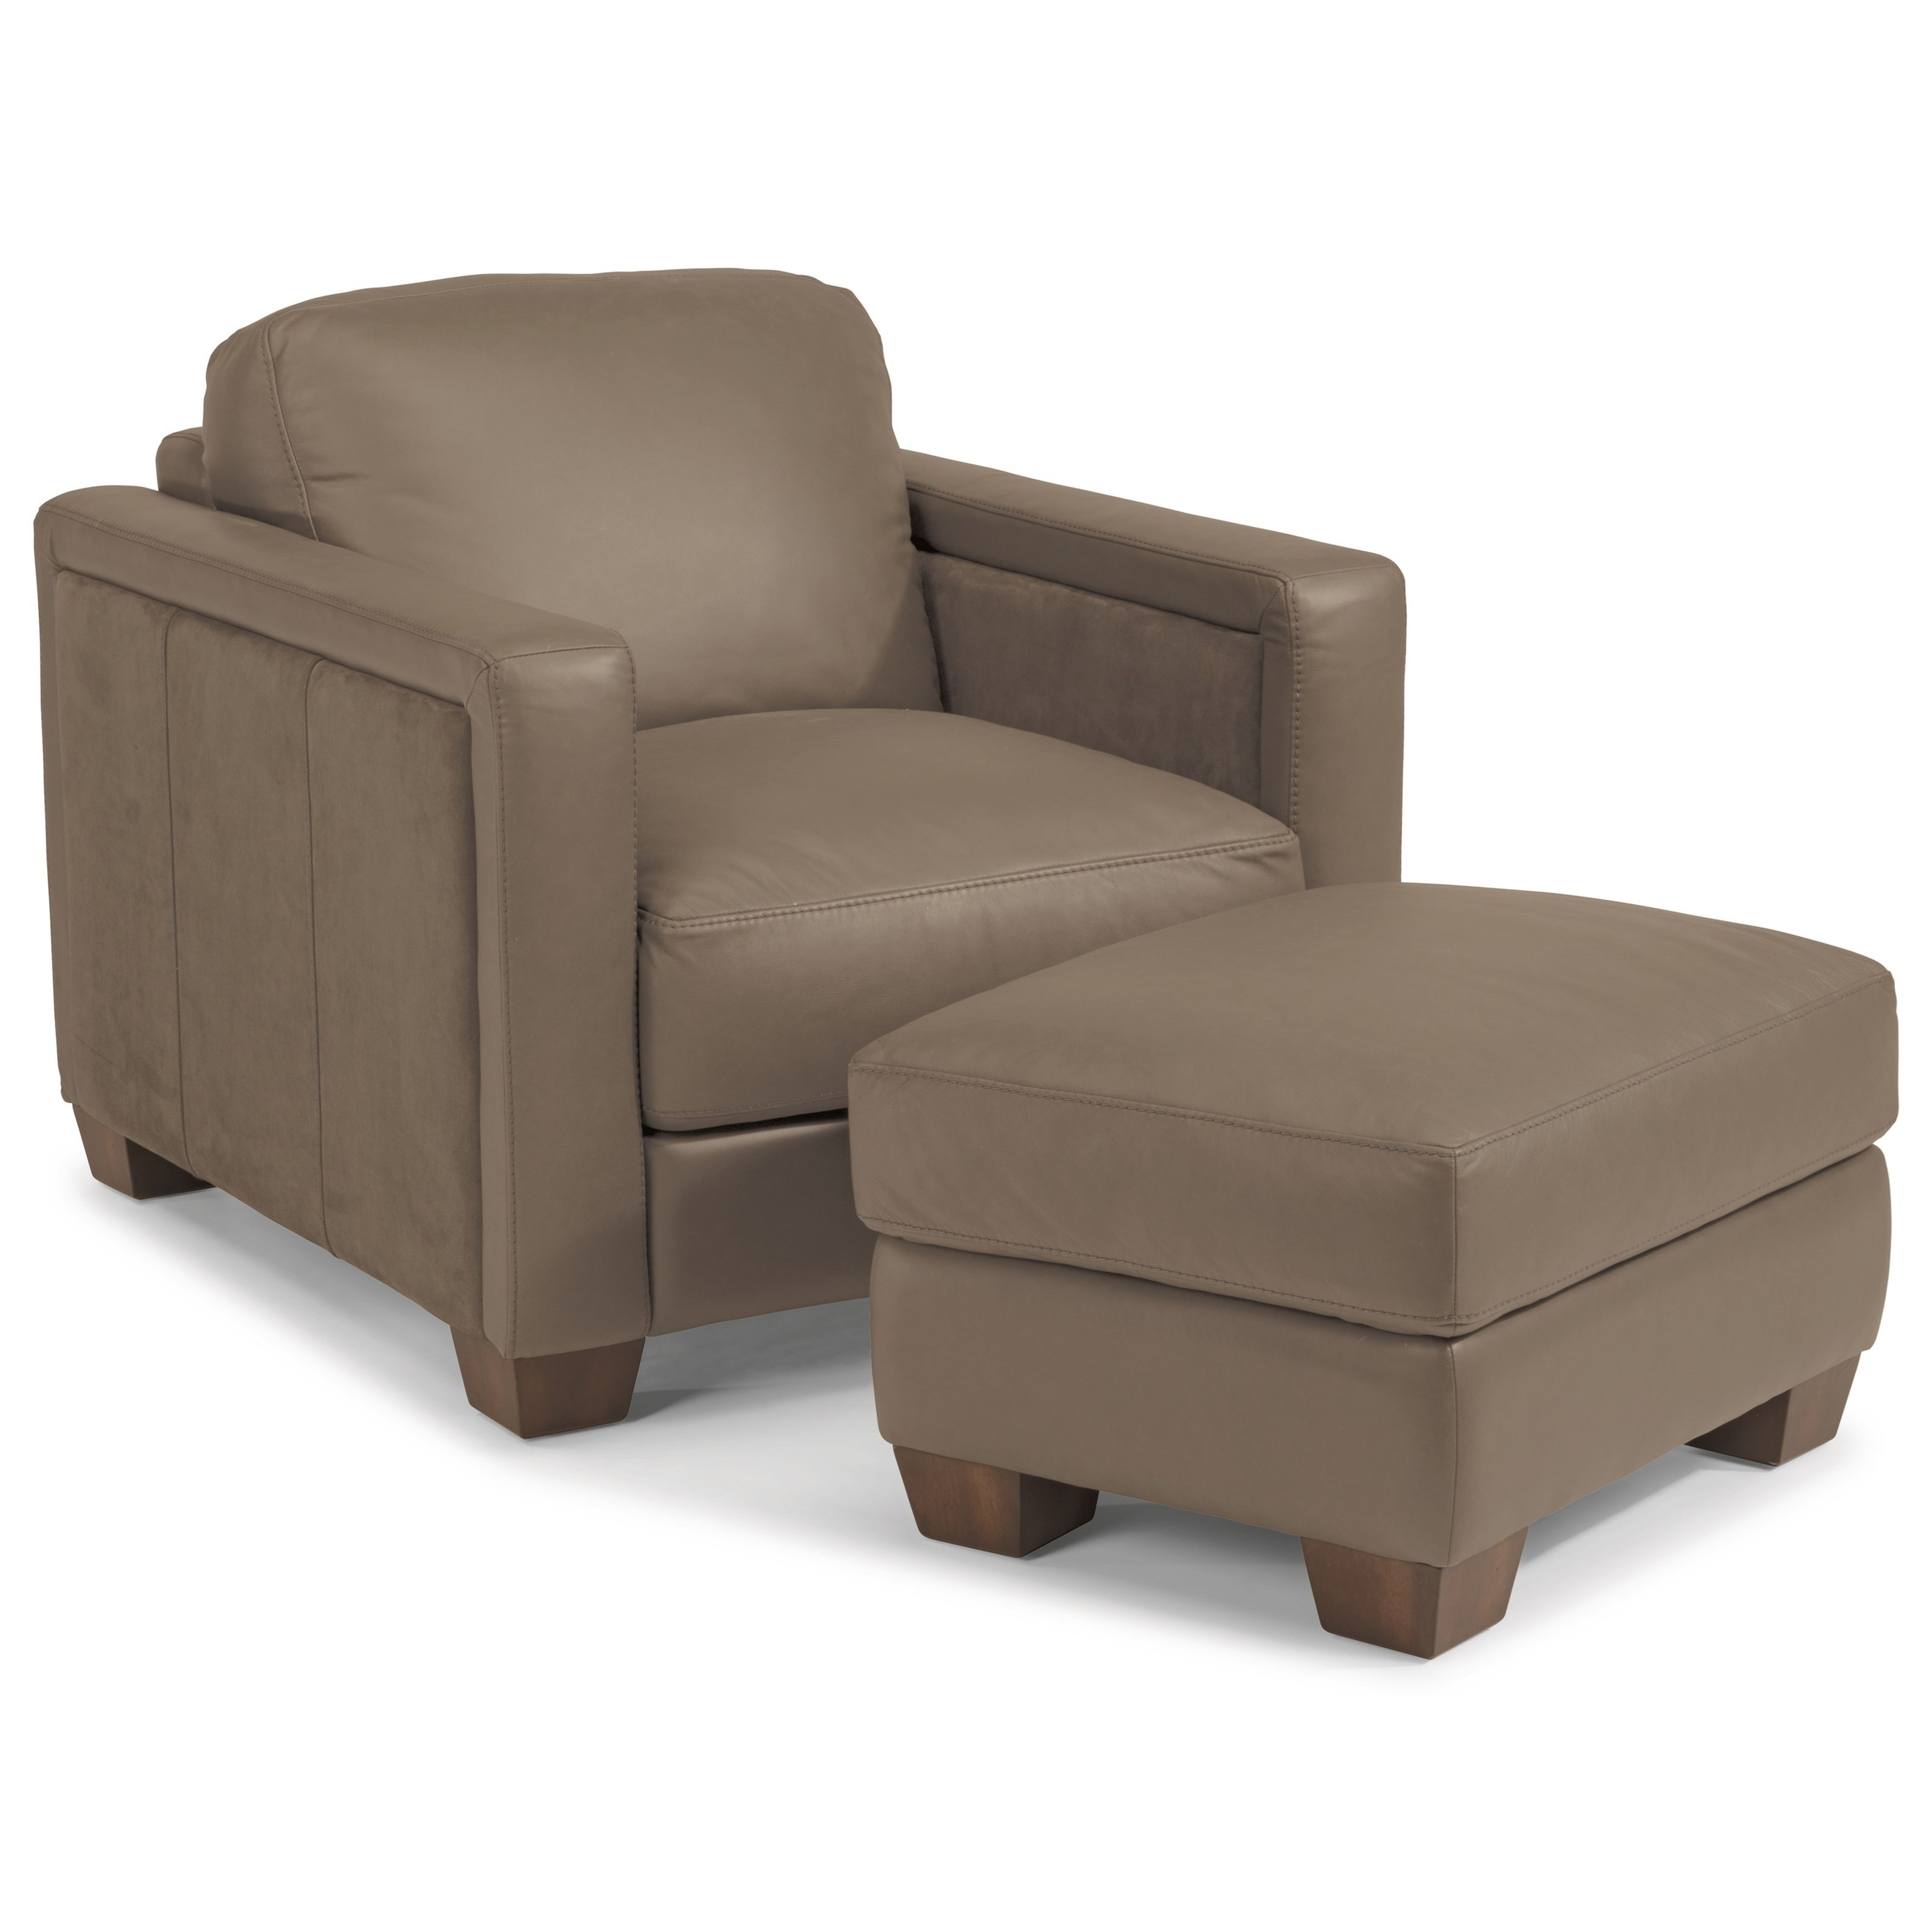 Flexsteel LatitudesWyman Contemporary Chair and Ottoman